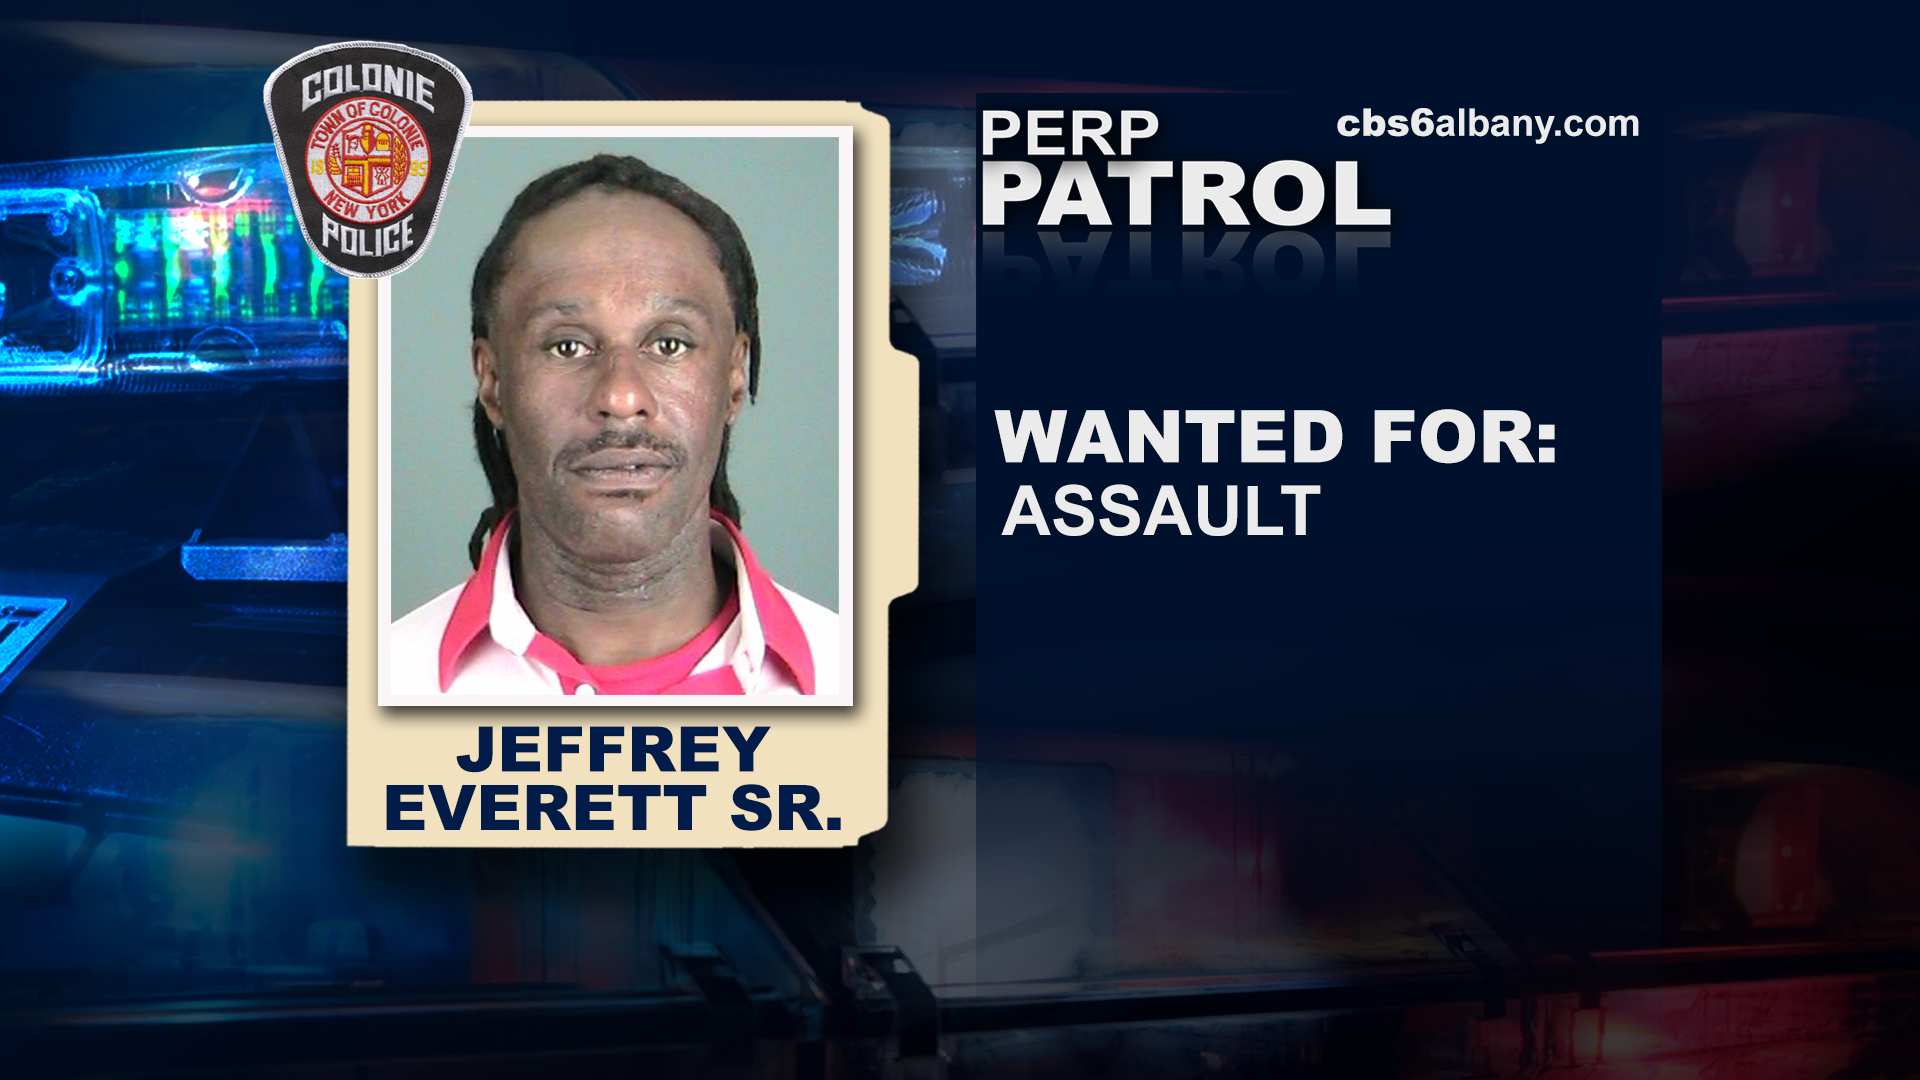 Jeffery Everett, SR: Wanted for assault.{ }